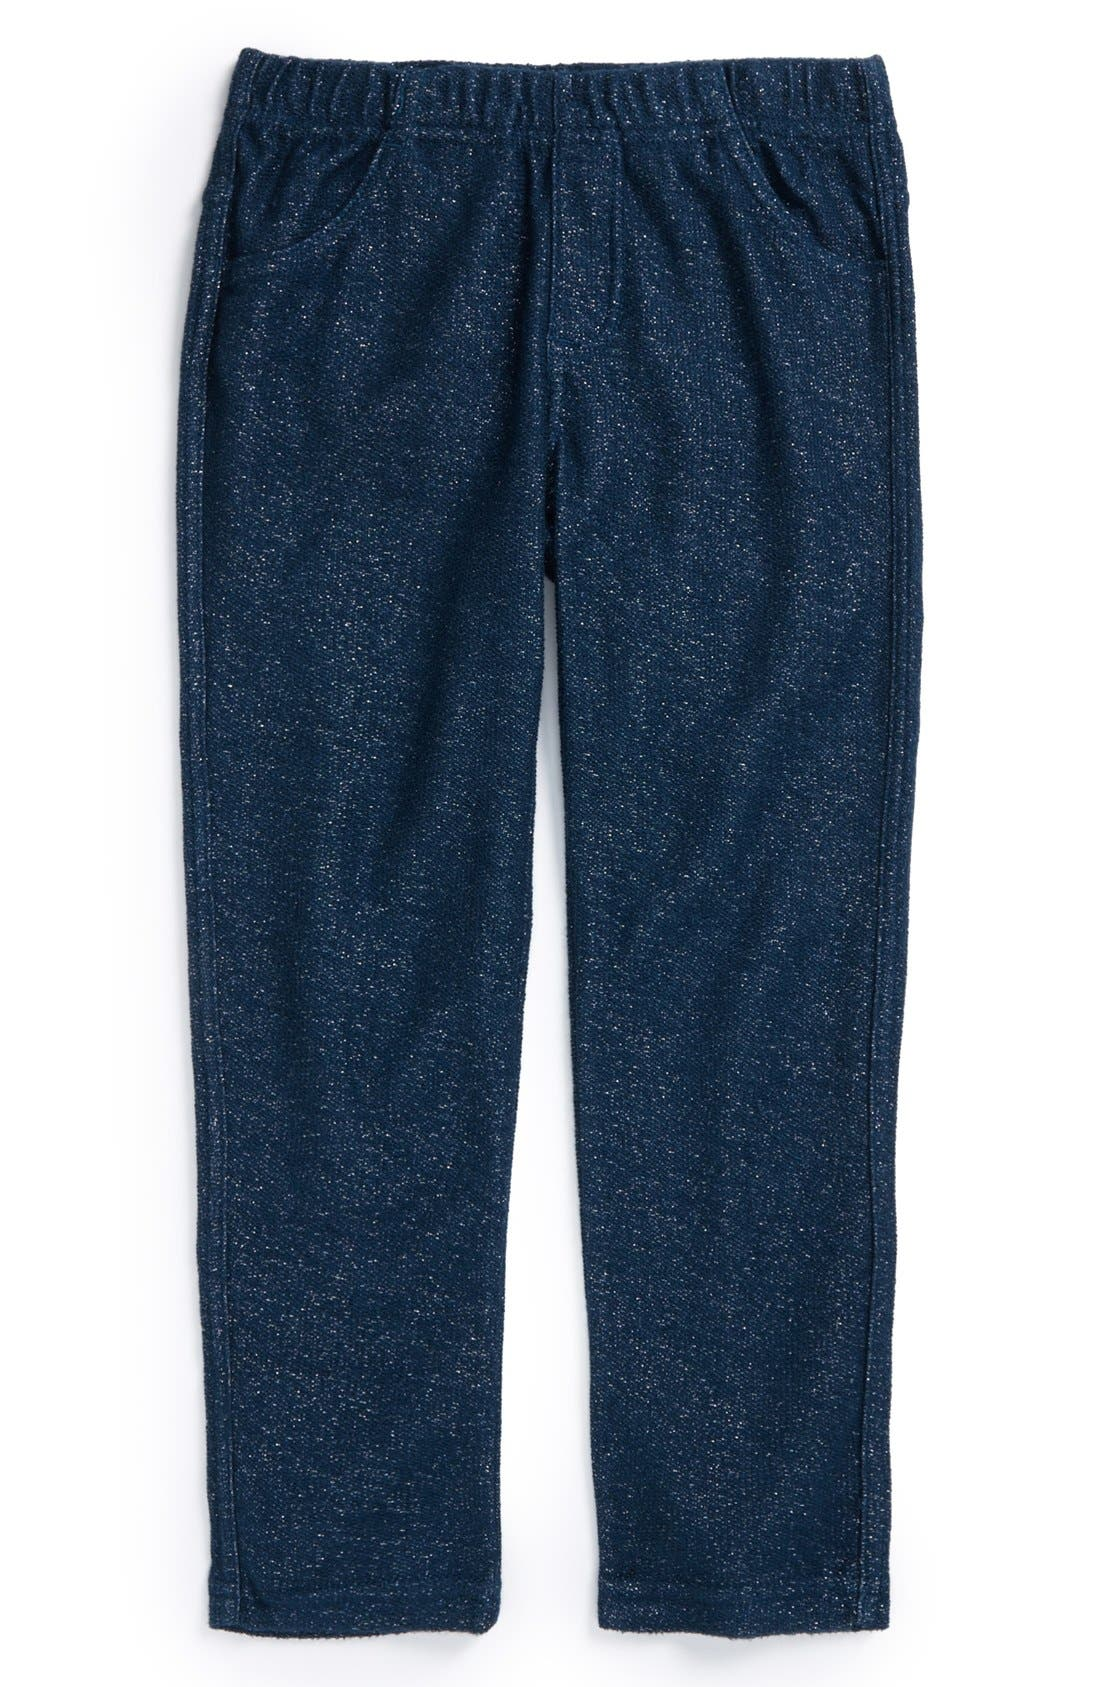 Alternate Image 1 Selected - Tea Collection 'Sparkle' French Terry Pants (Little Girls & Big Girls)